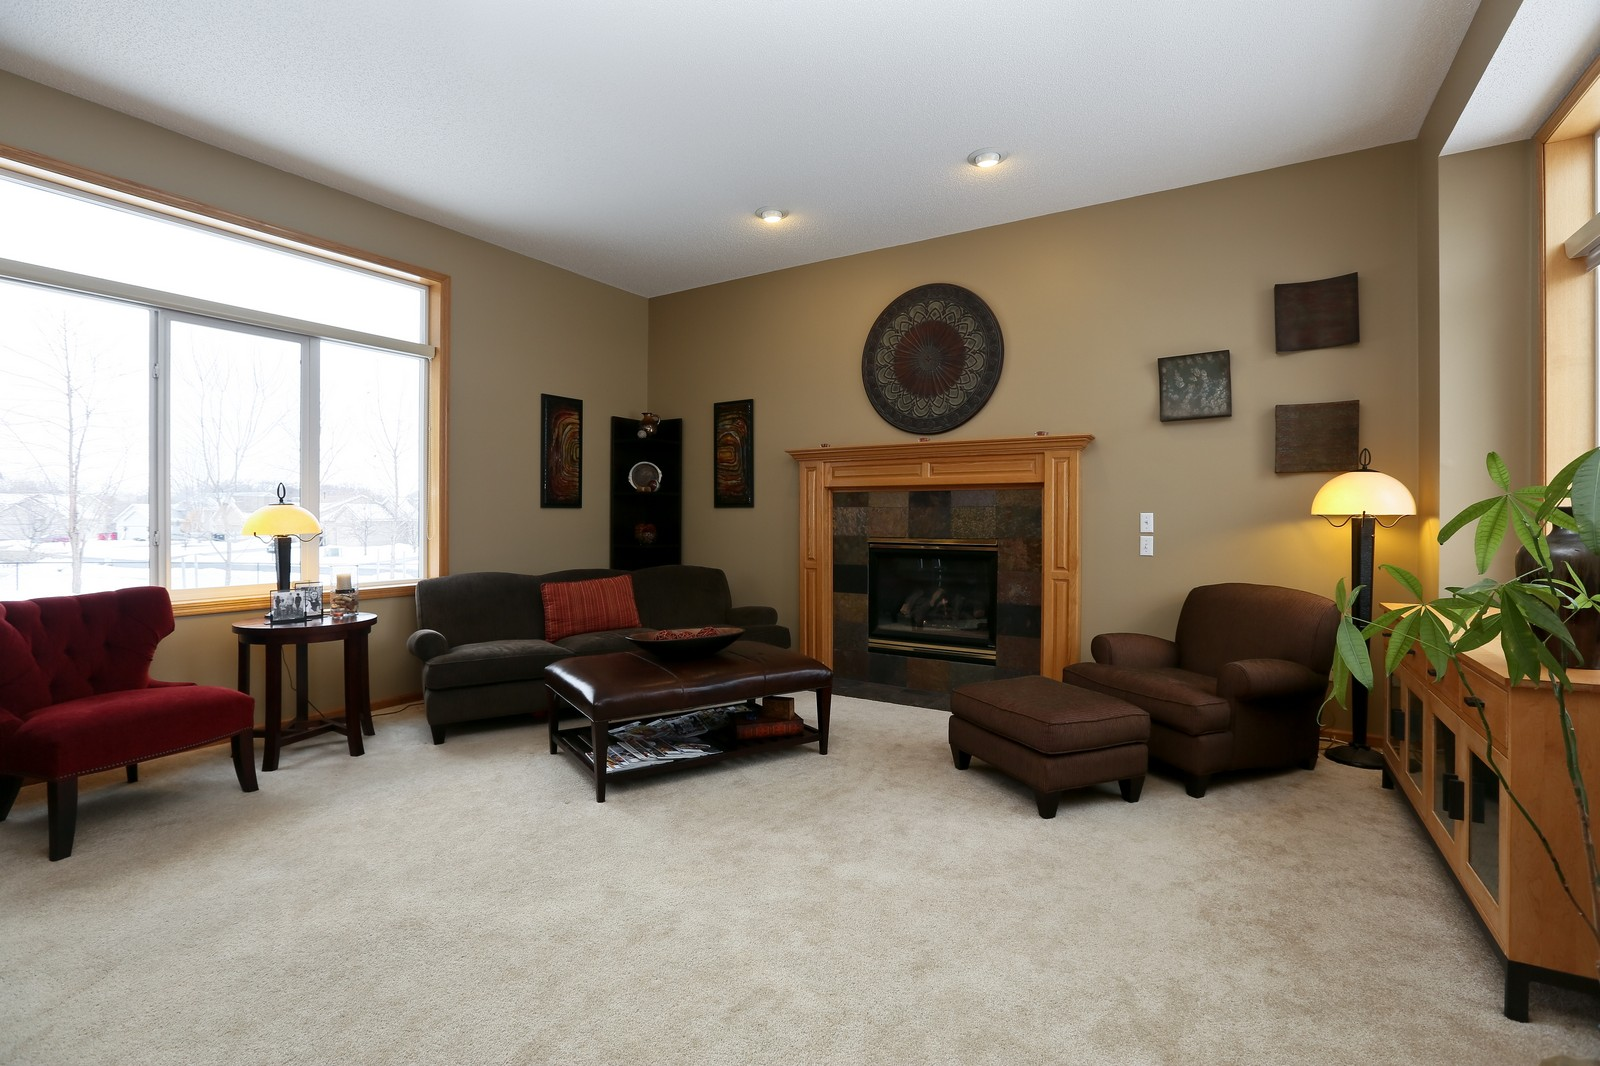 Real Estate Photography - 15488 Linnet Street NW, Andover, MN, 55304 - Living Room